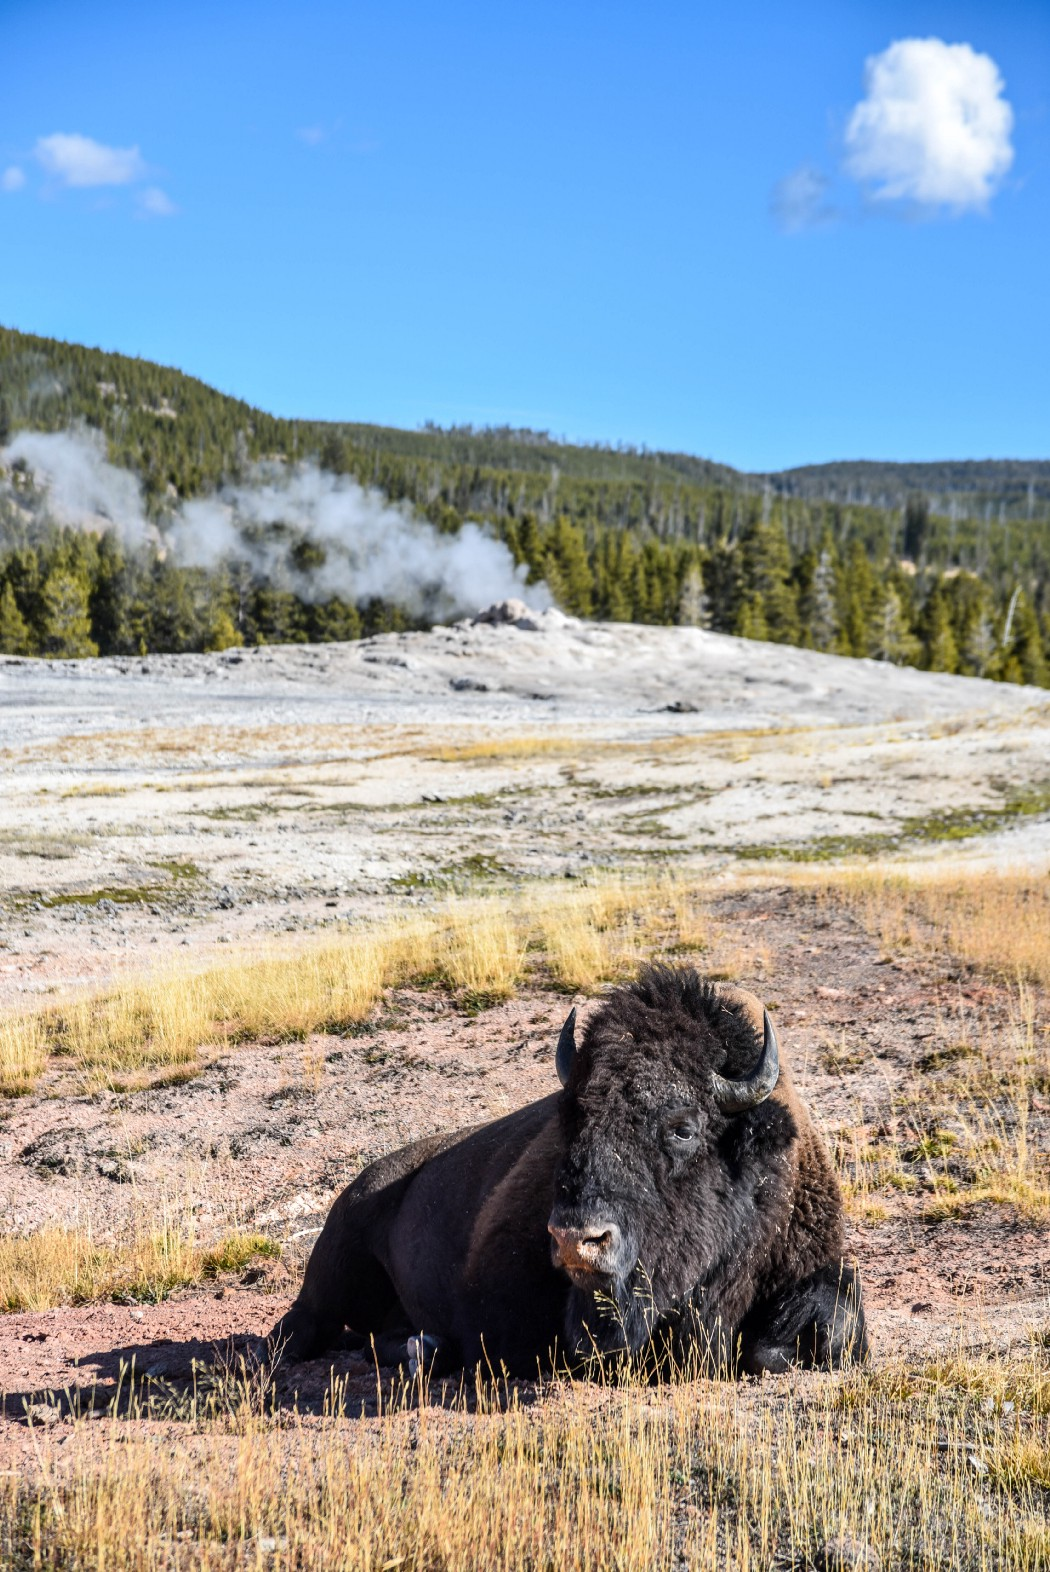 Bison laying by Old Faithful in Yellowstone National Park (ethically photographed)